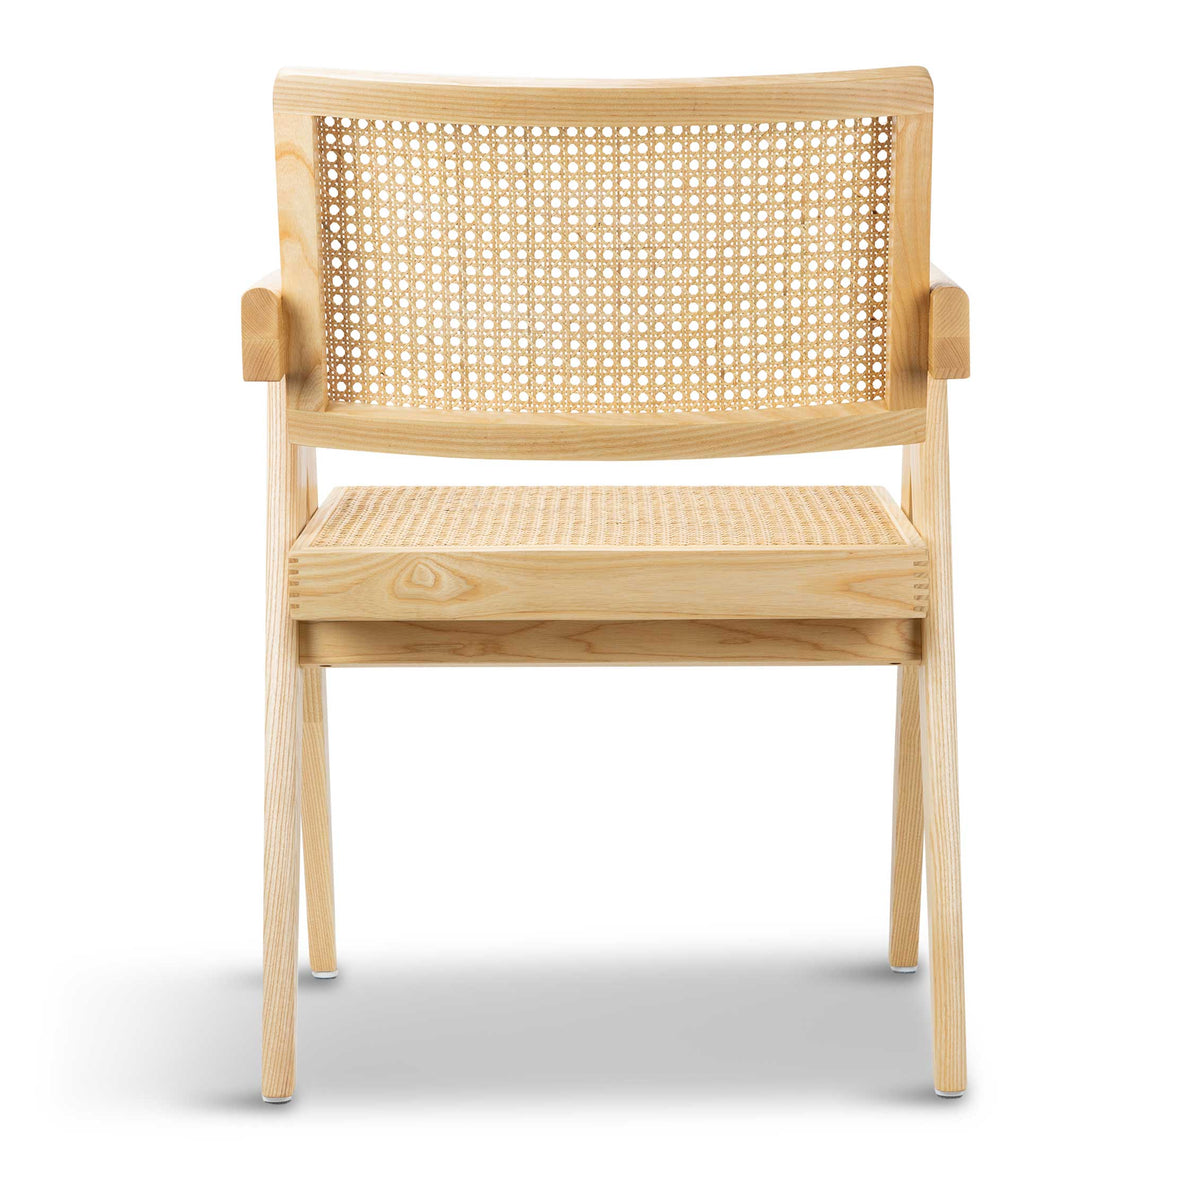 Mr. Cane Dining Chair